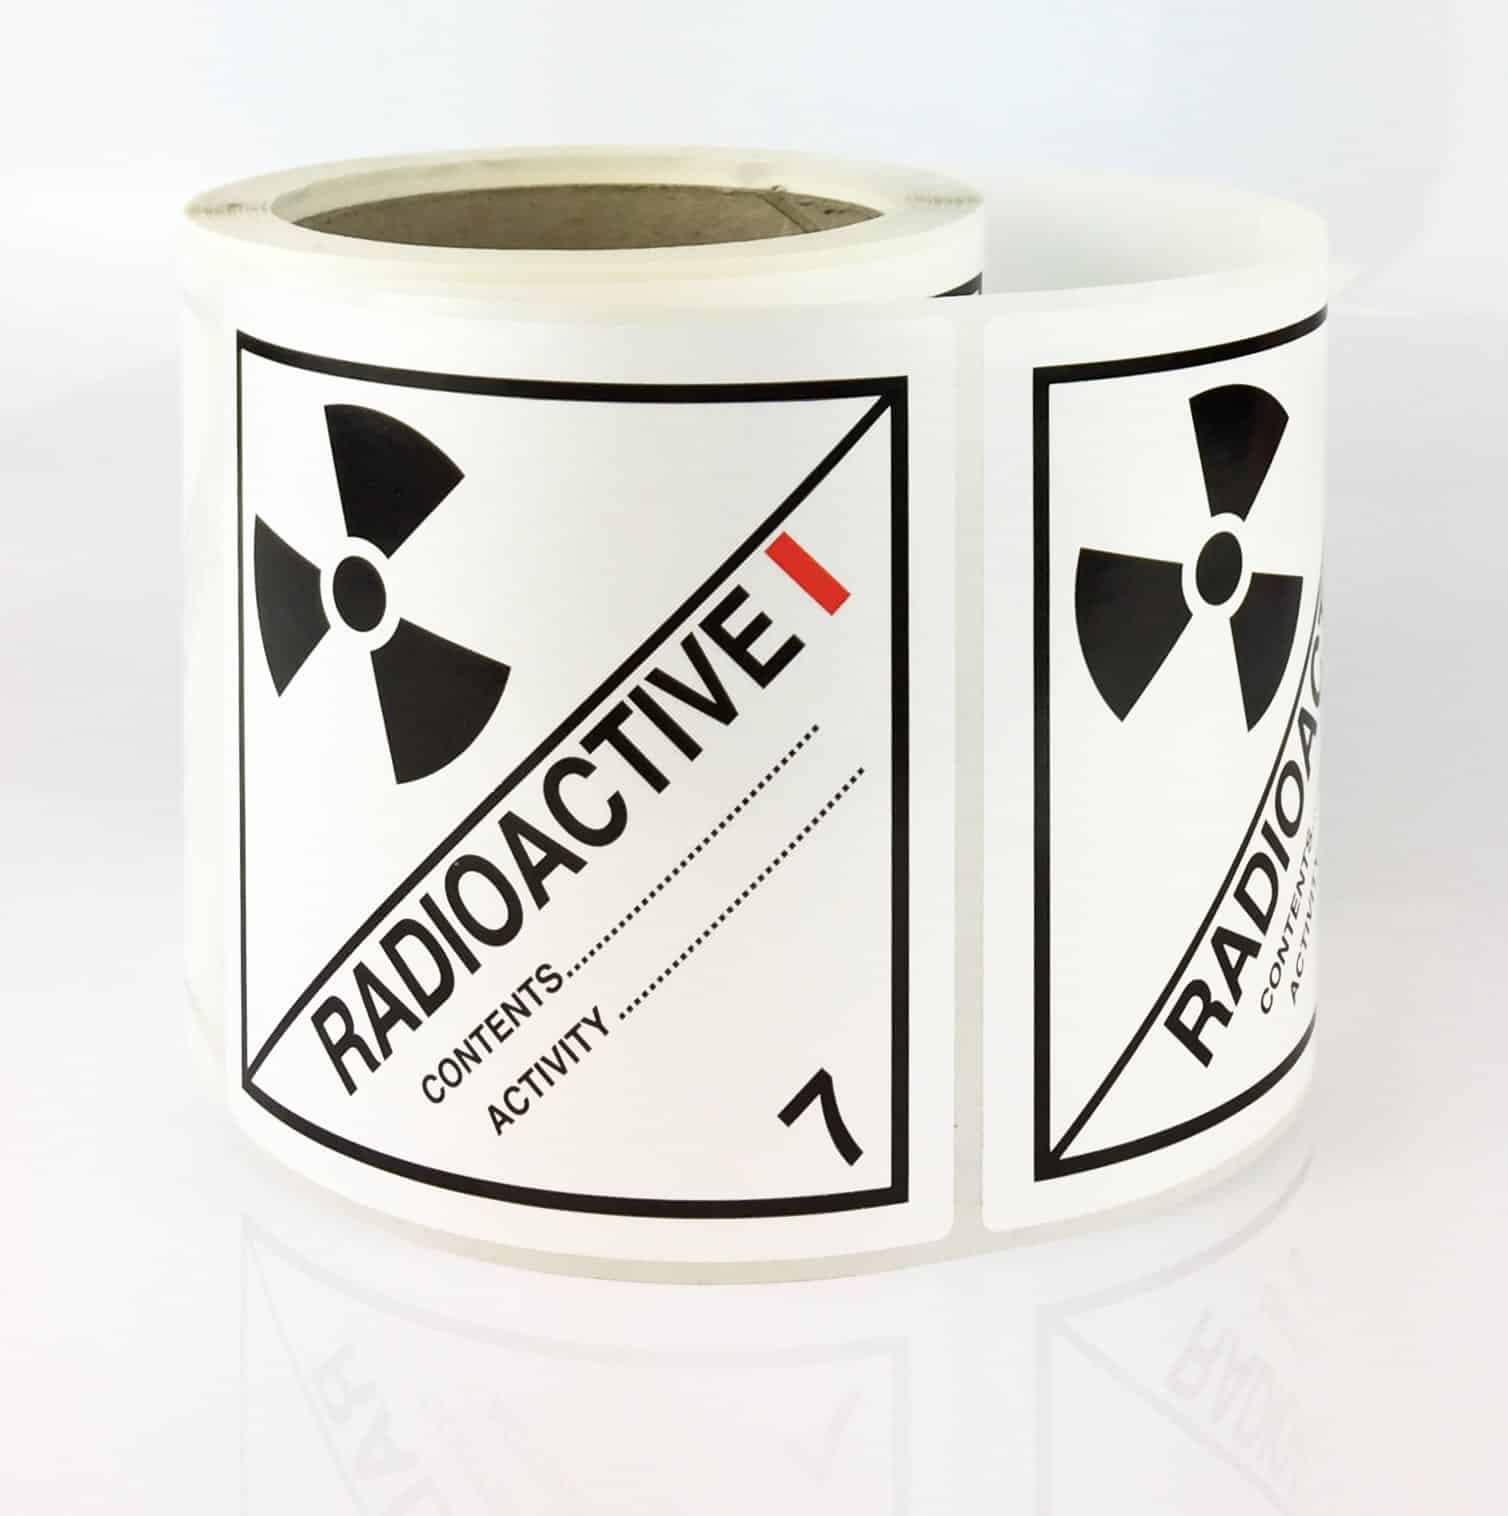 Class 7 Labels. Radioactive Label, White-I 100mm X 100mm